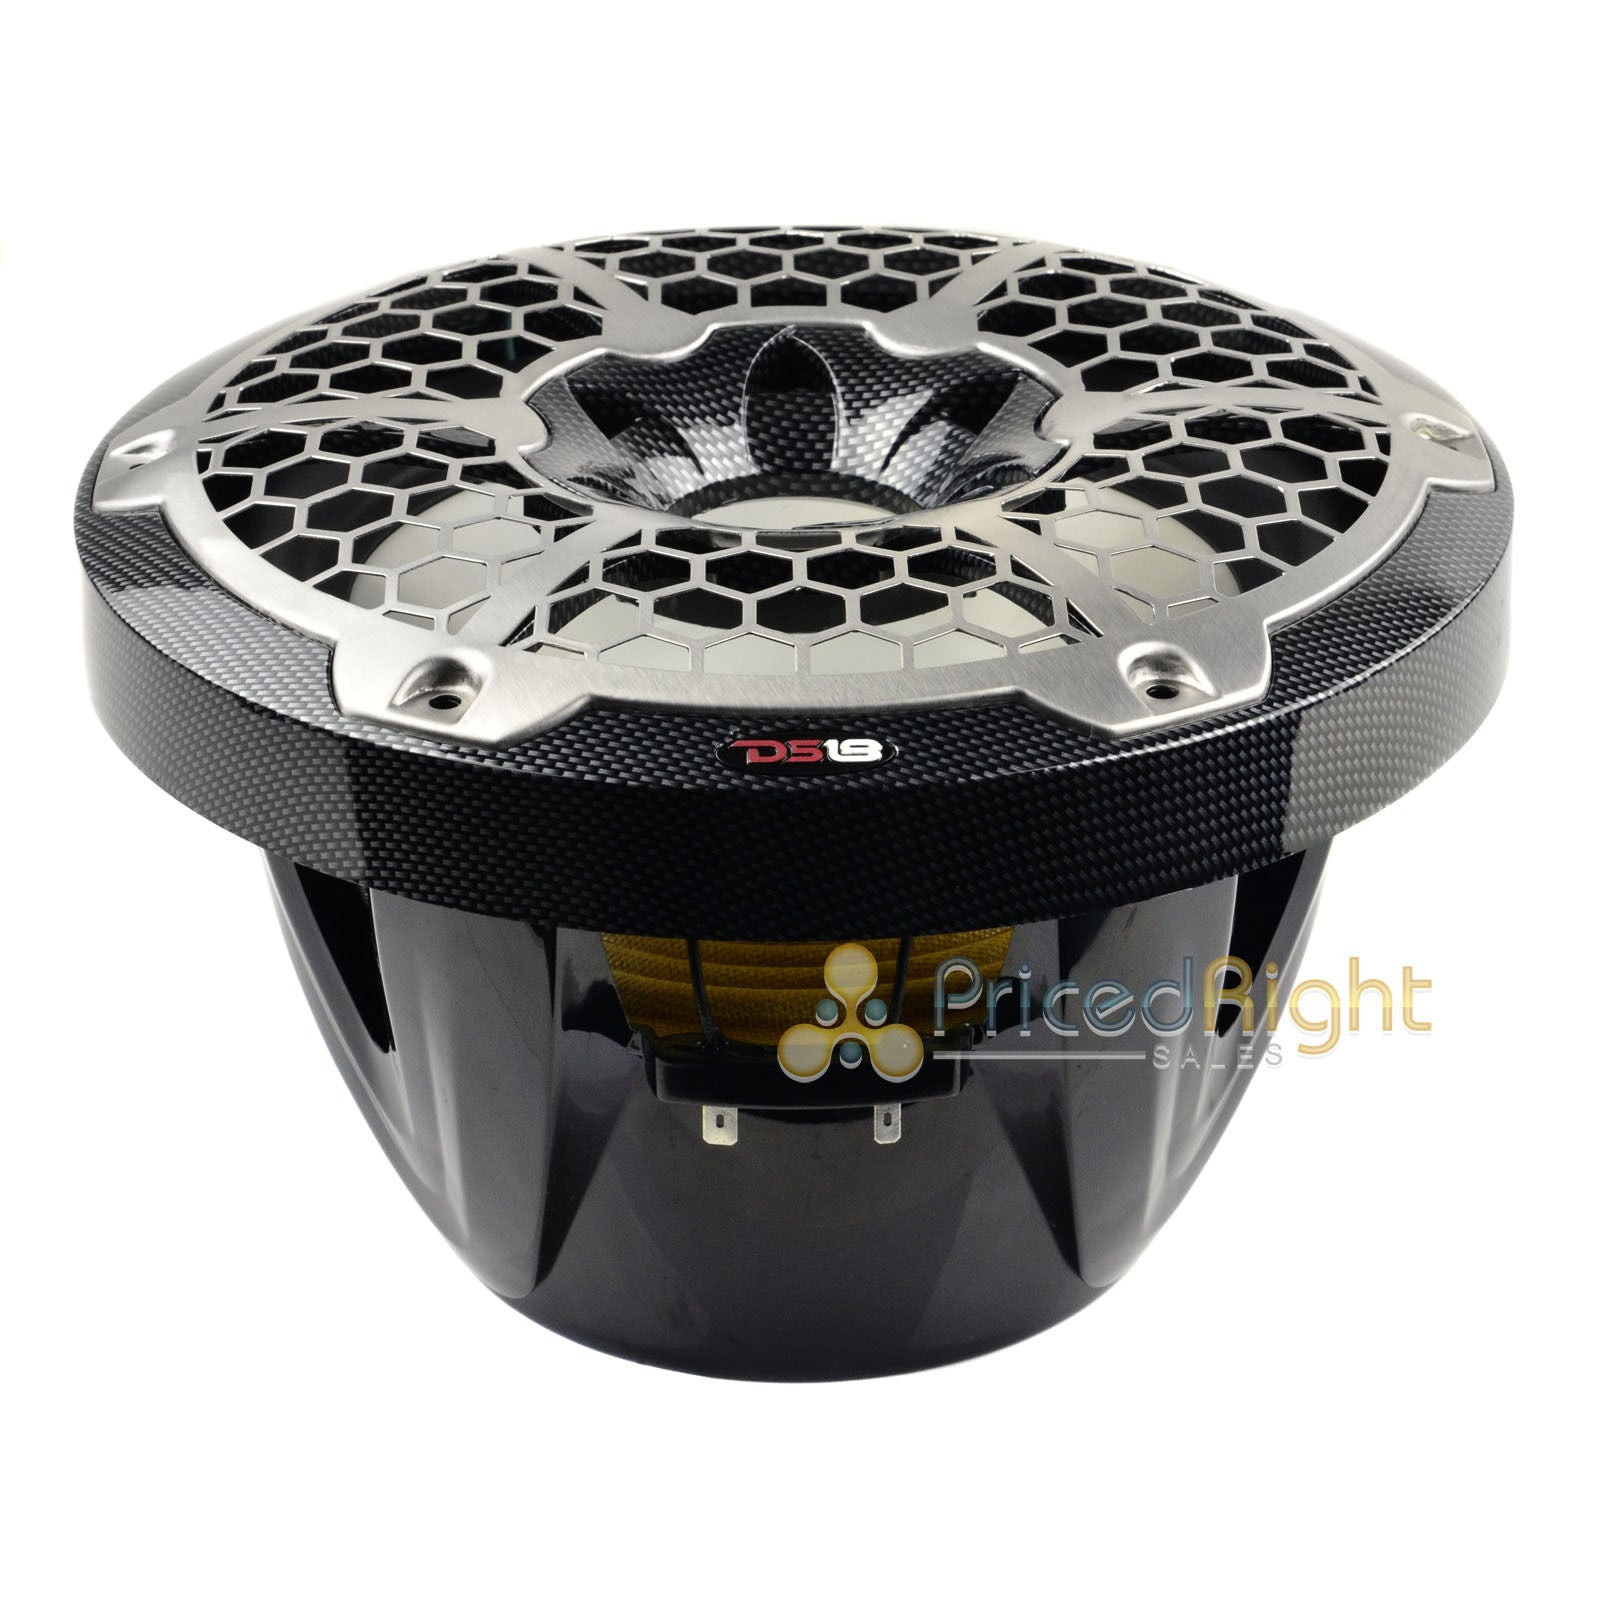 "10"" Marine Grade Subwoofer Sub 600 Watts Max Power DS18 CF10SUB RGB LED Lighting"